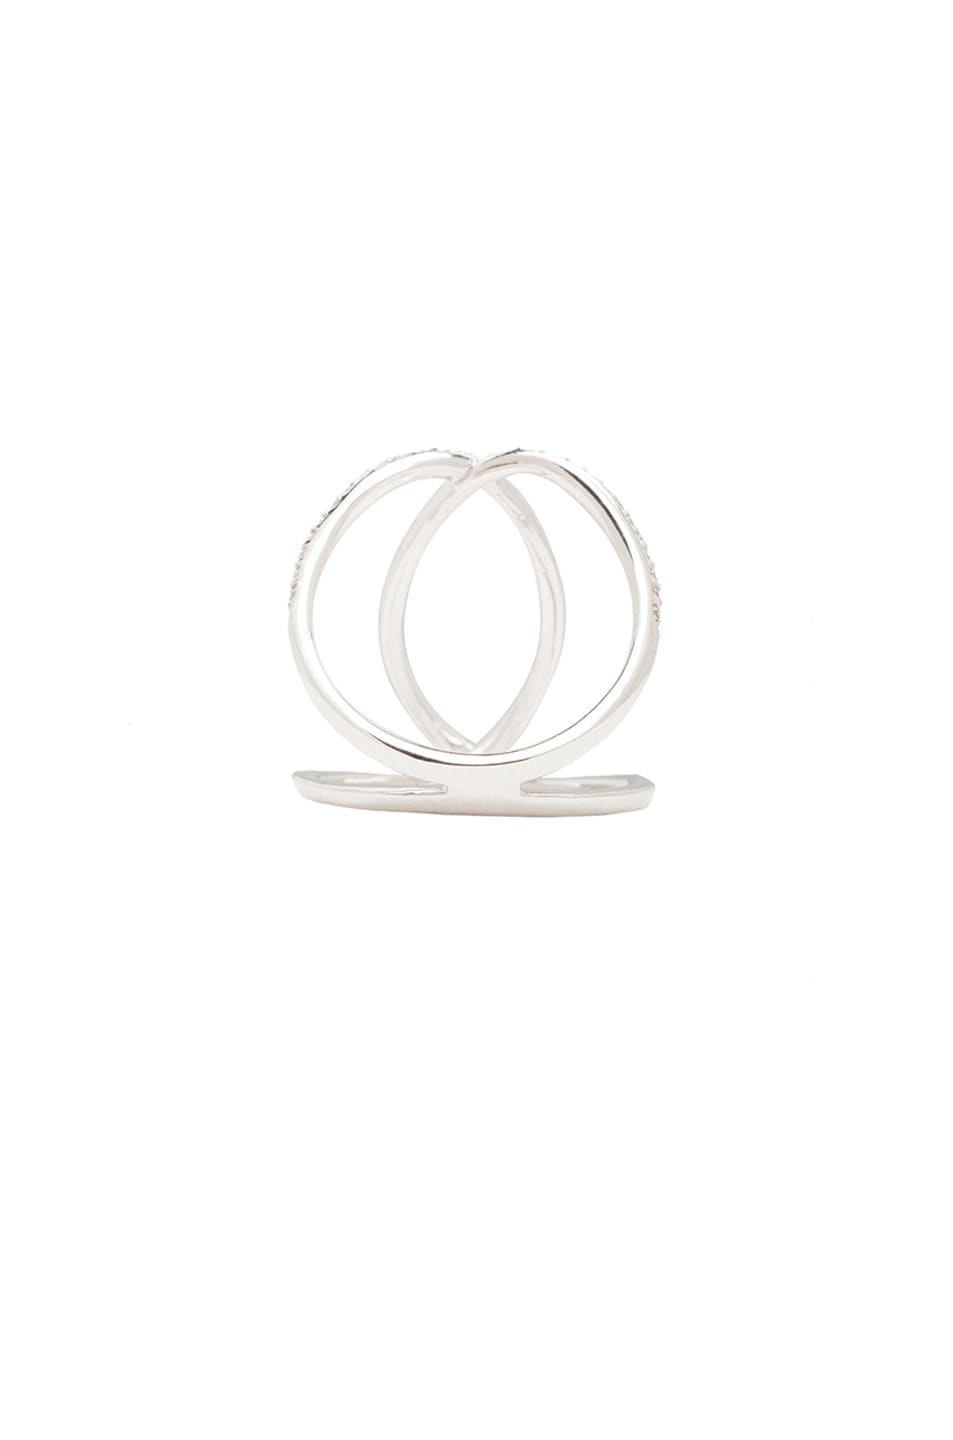 Image 3 of Jacquie Aiche 14K Pave Overlap Circle Ring in White Gold